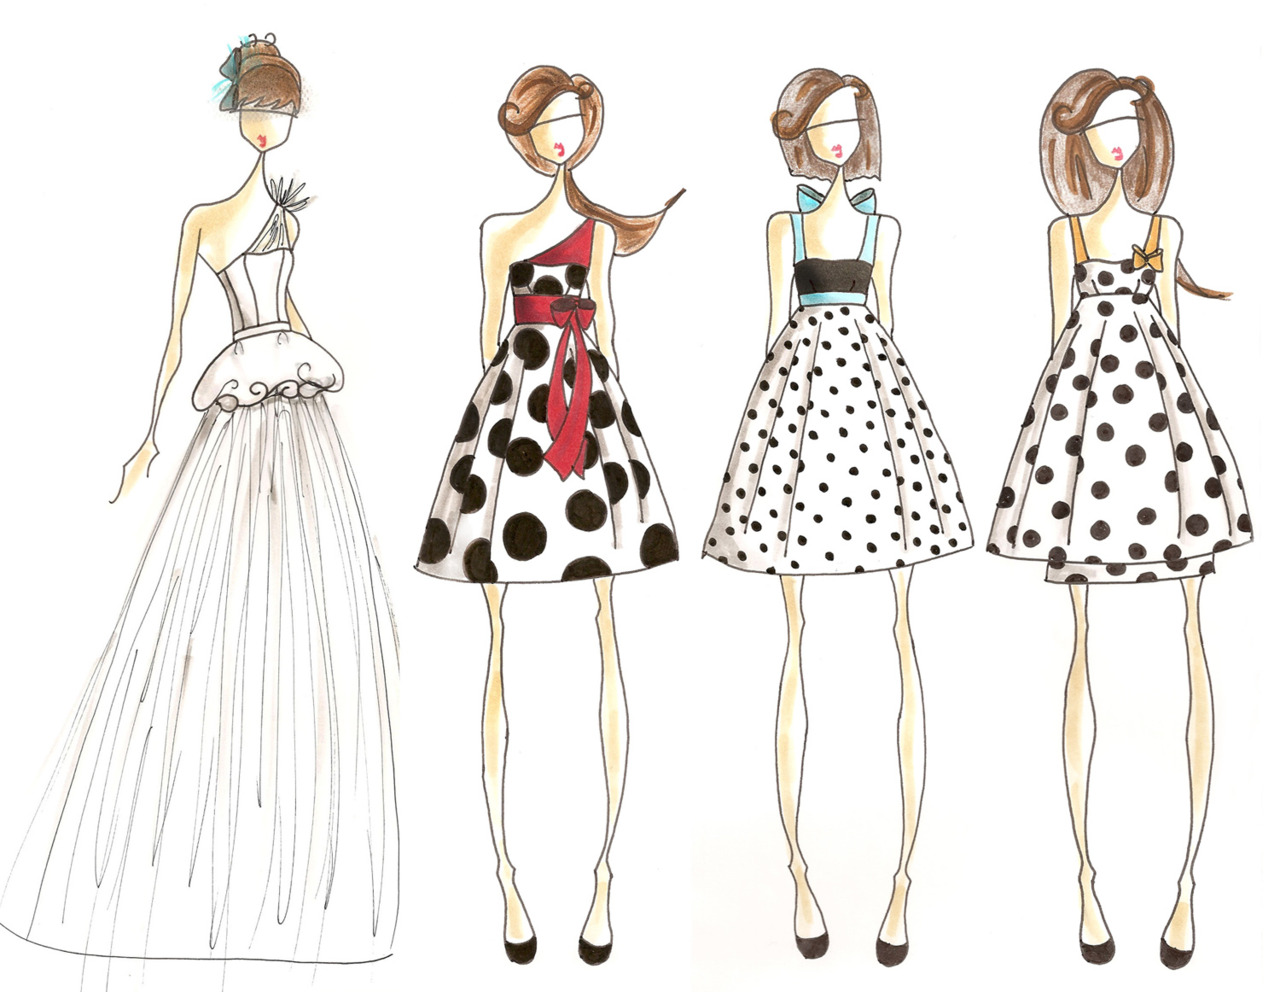 I've been in love with this  dress on Modcloth  for awhile now. And I was looking a it the other day and I realized - omg, when I get married I want my bridesmaids to wear that. So I got in the mood to do a little sketching. Nothing crazy. But I threw together a mini bridal party collection. Tadaaaaa.